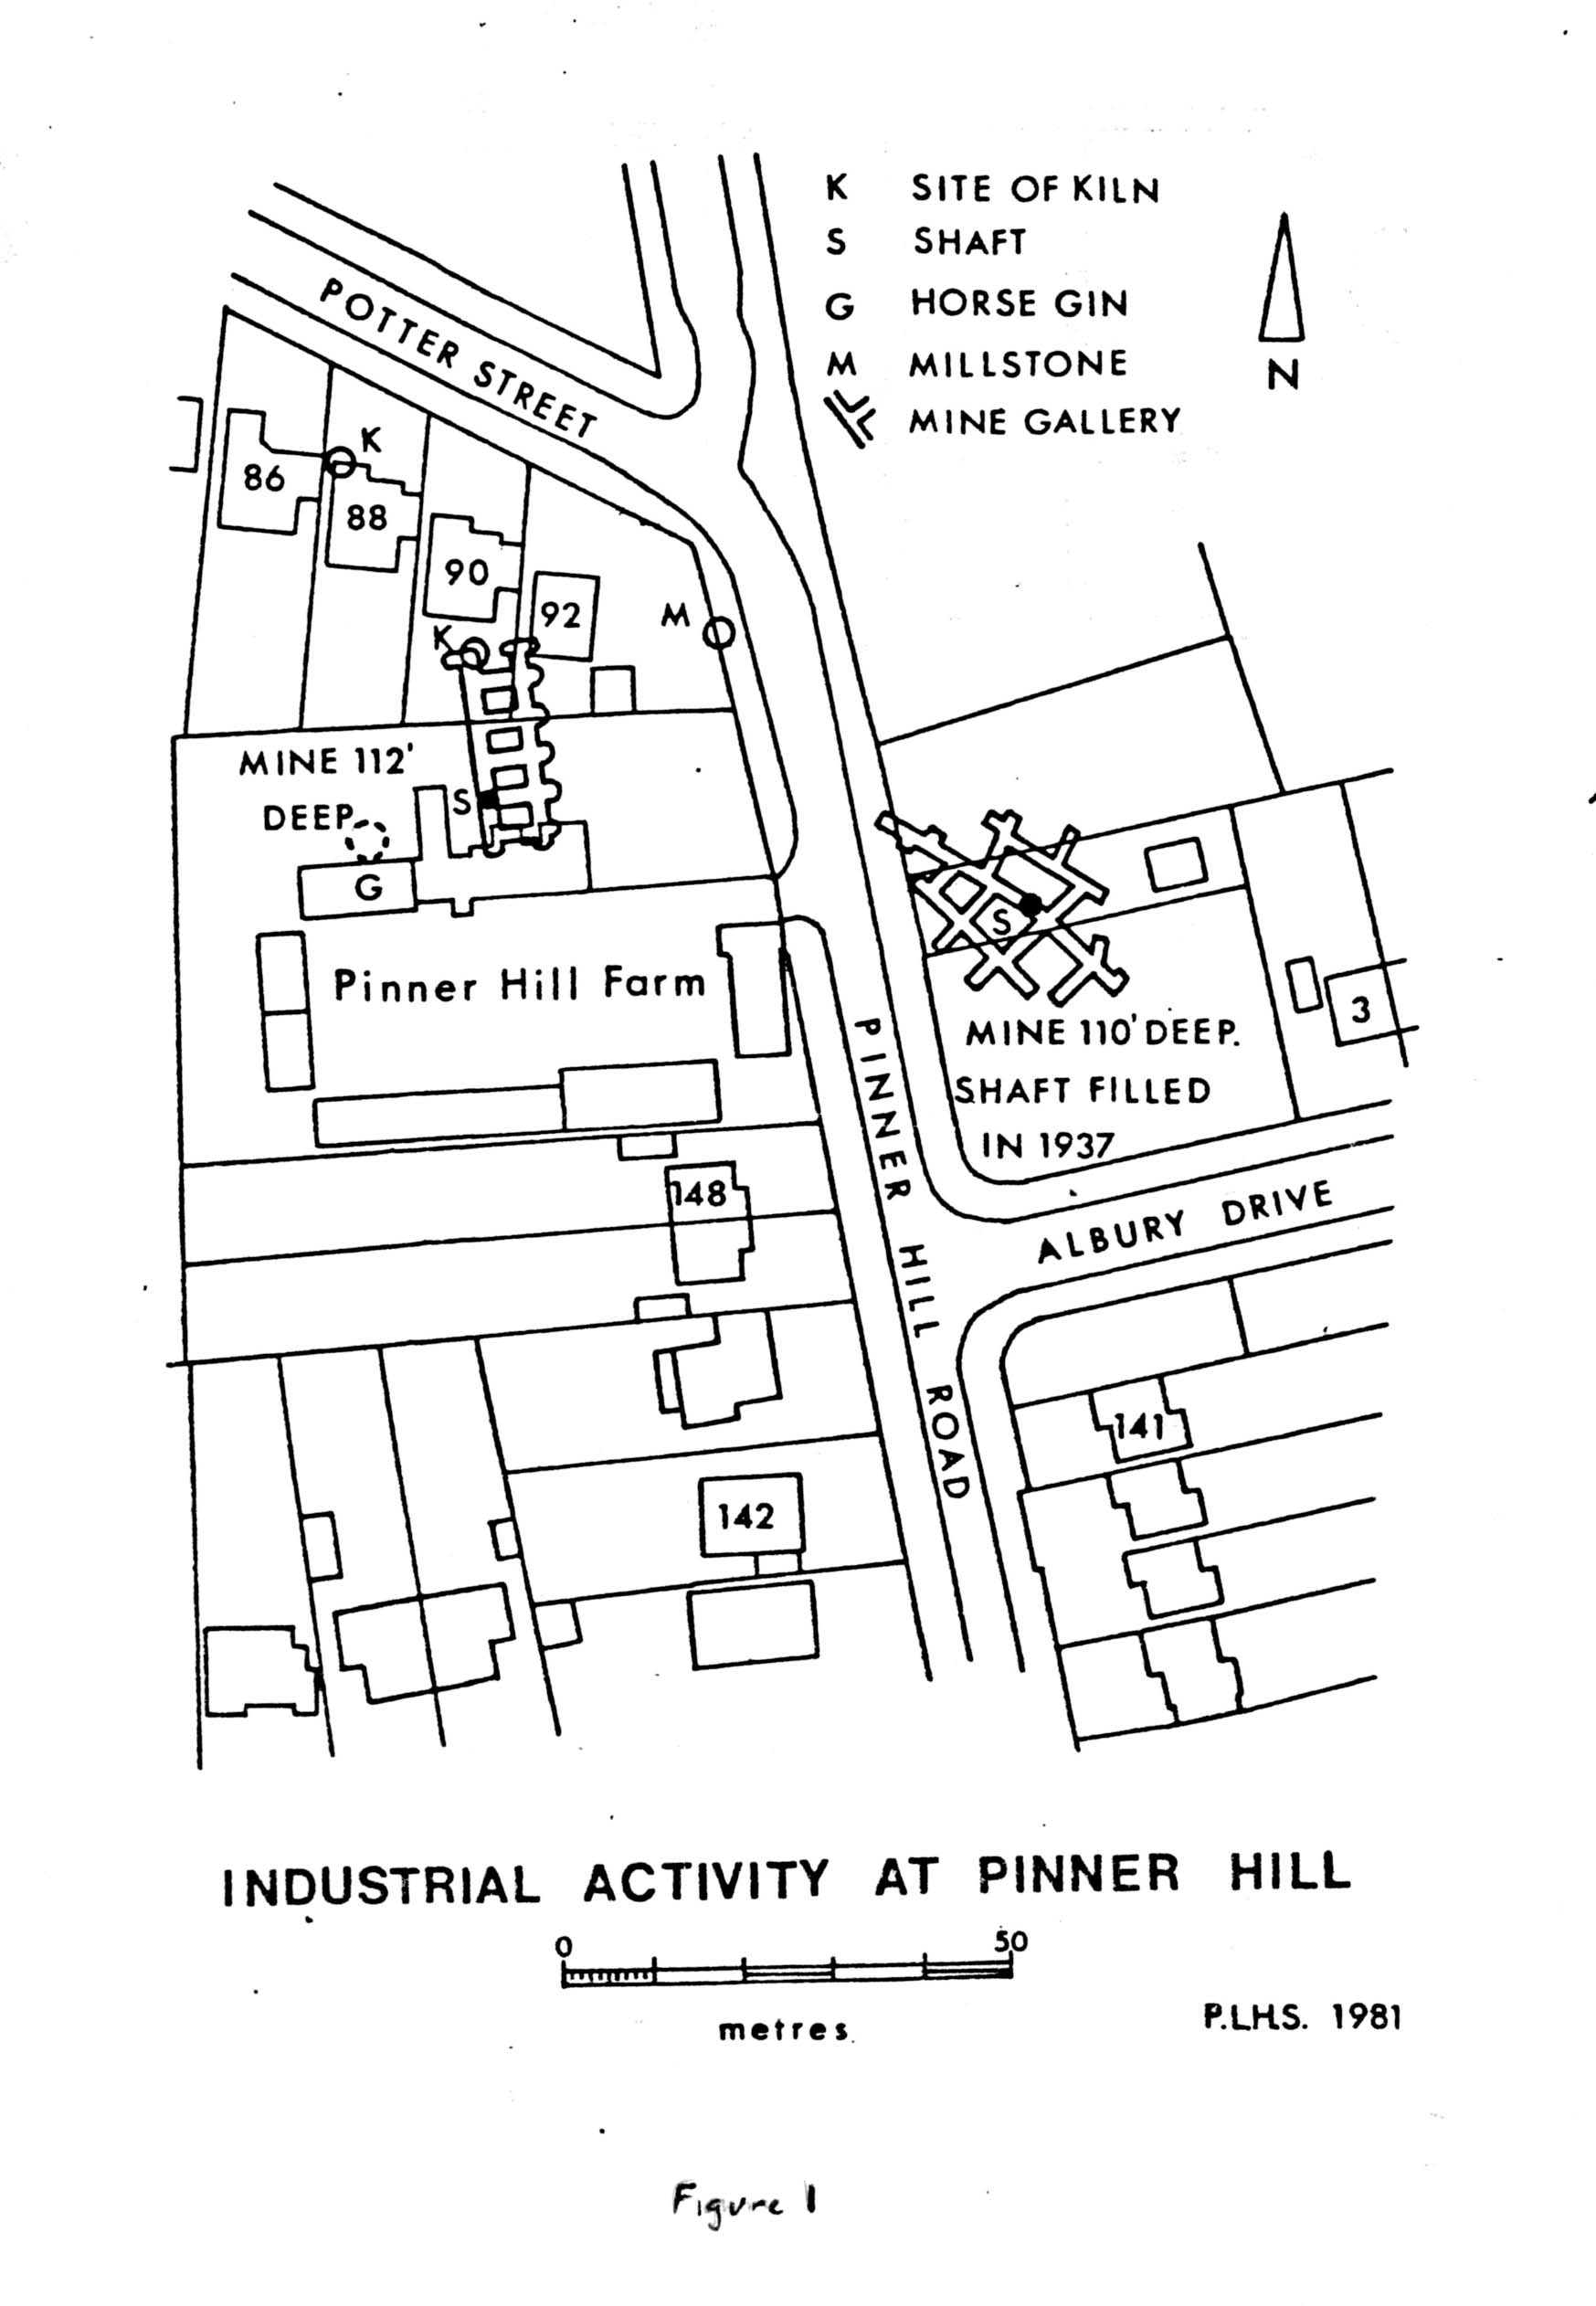 Fig 1. Industrial activity at Pinner Hill. PLHS, 1981